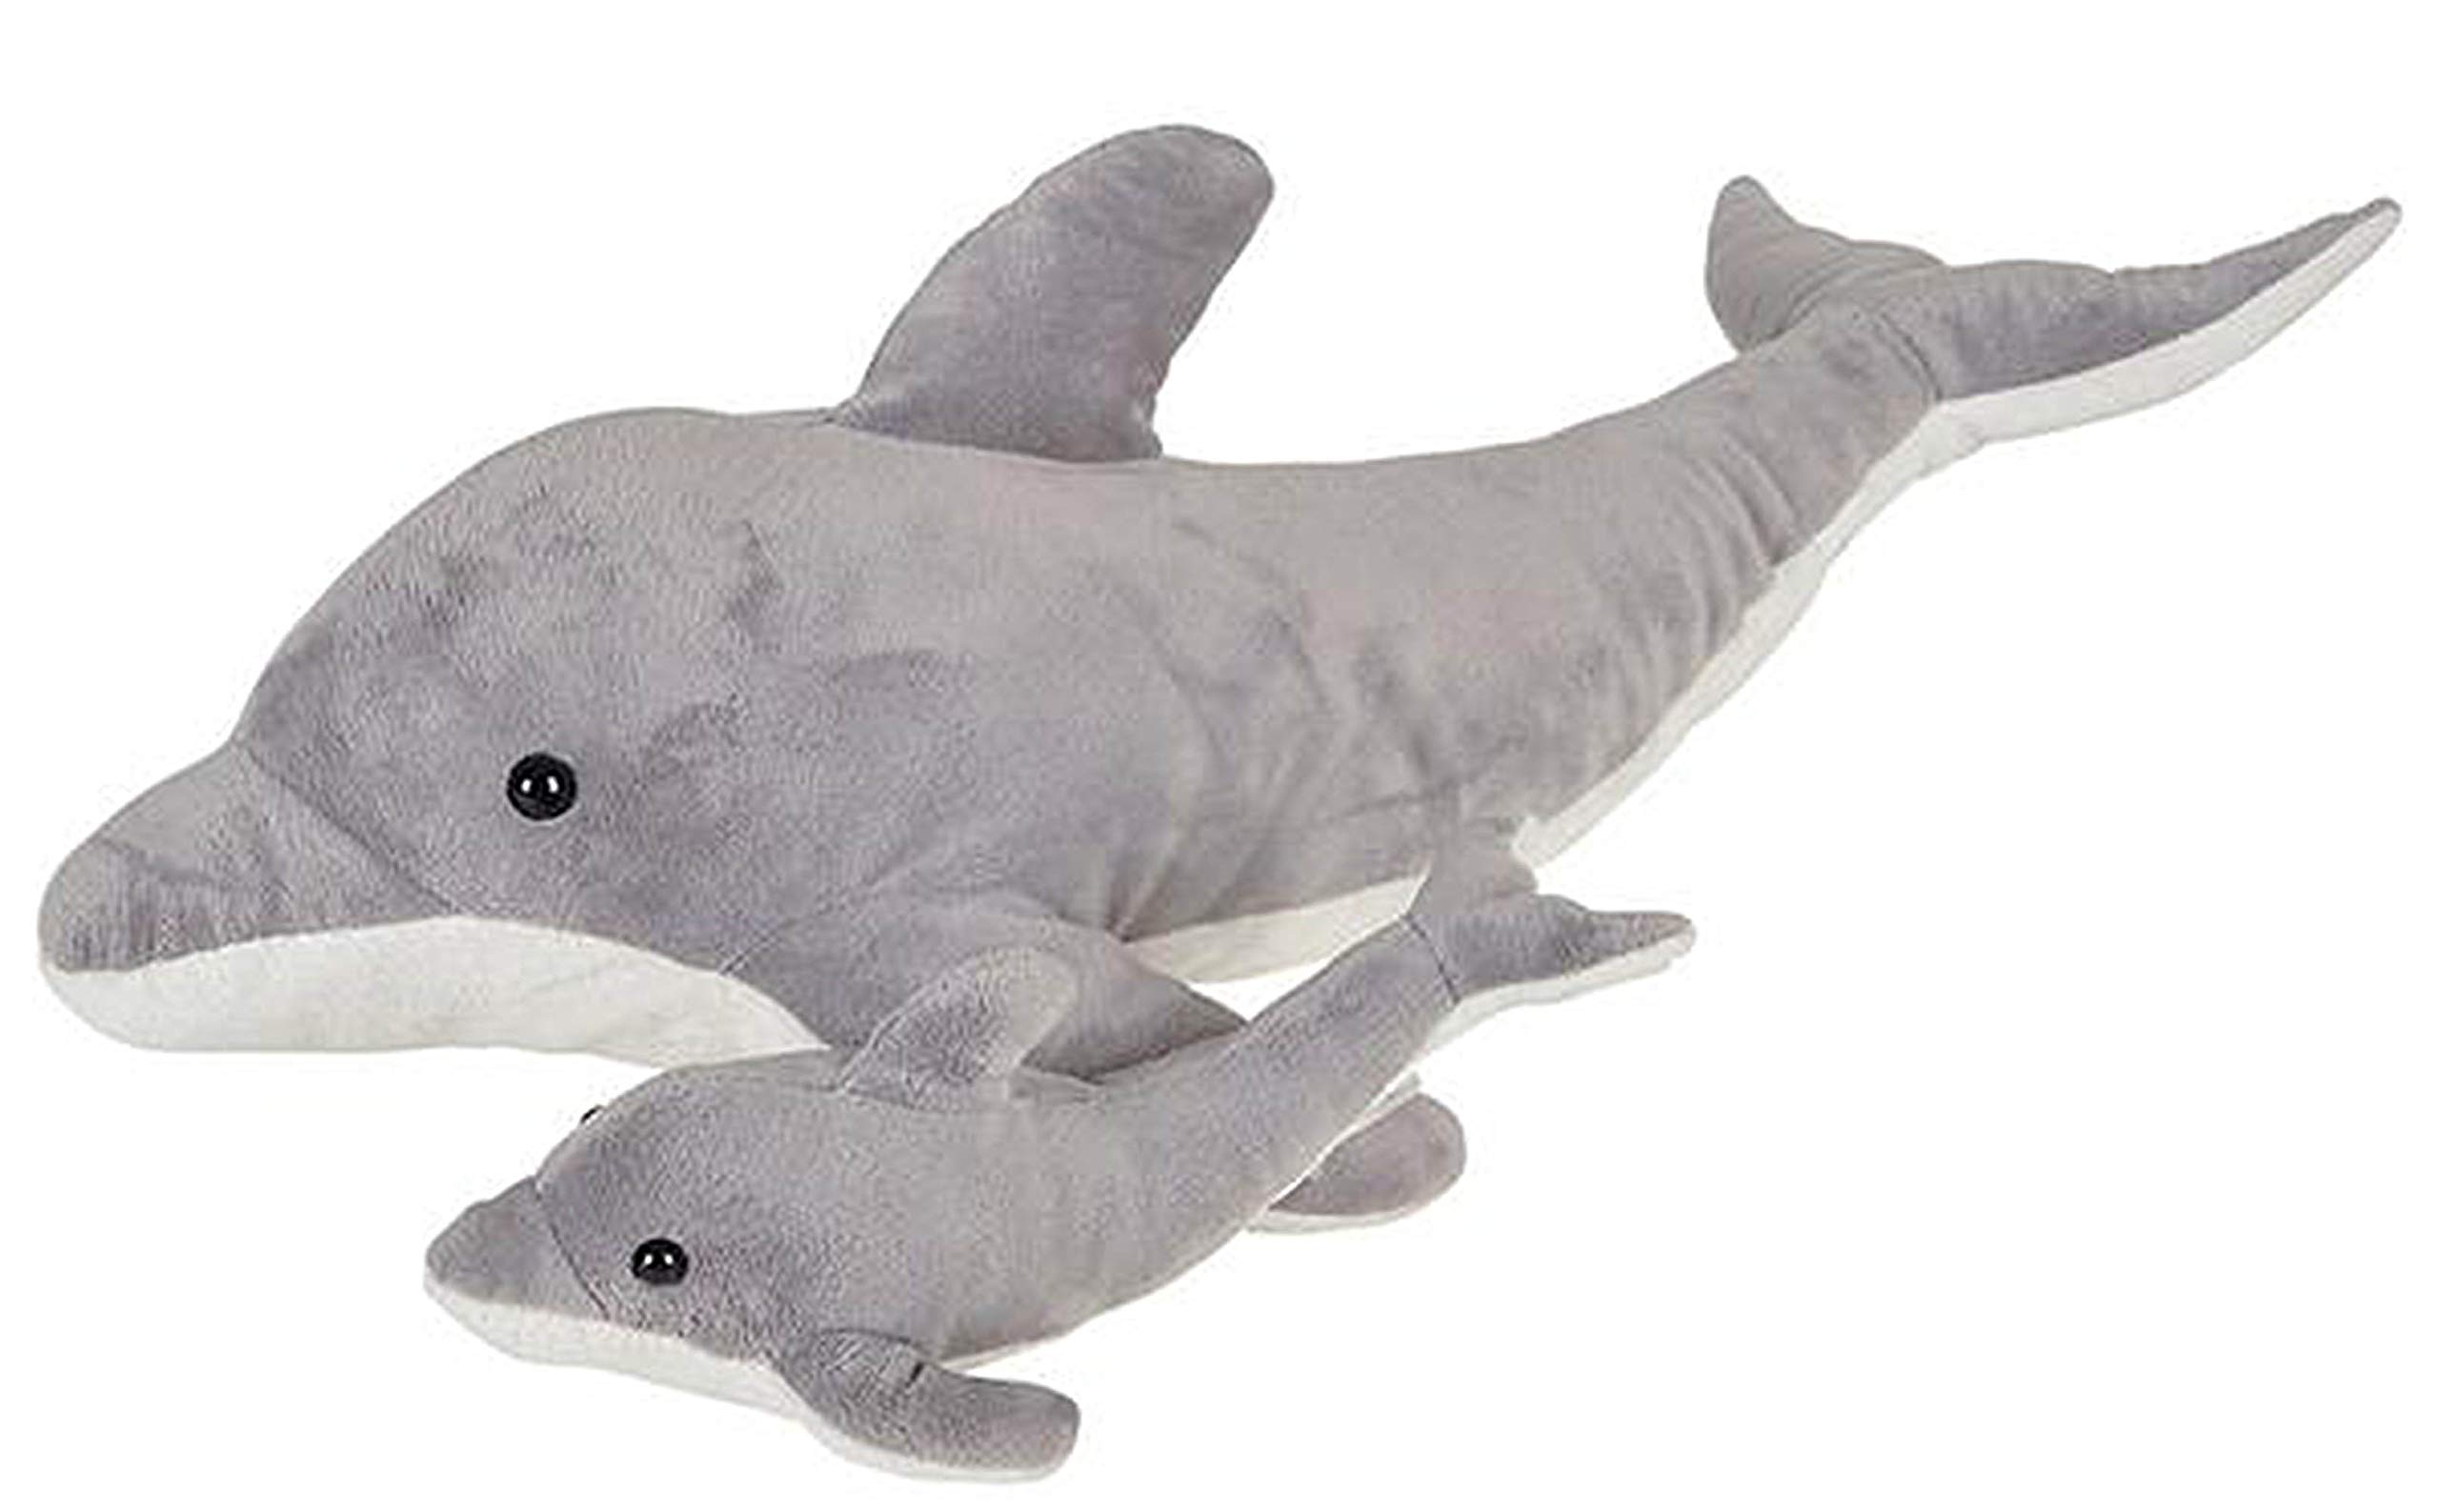 Wildlife Tree 22 and 9 Inch Stuffed Dolphin Mom and Baby Plush Floppy Zoo Animal Family Collection by Wildlife Tree